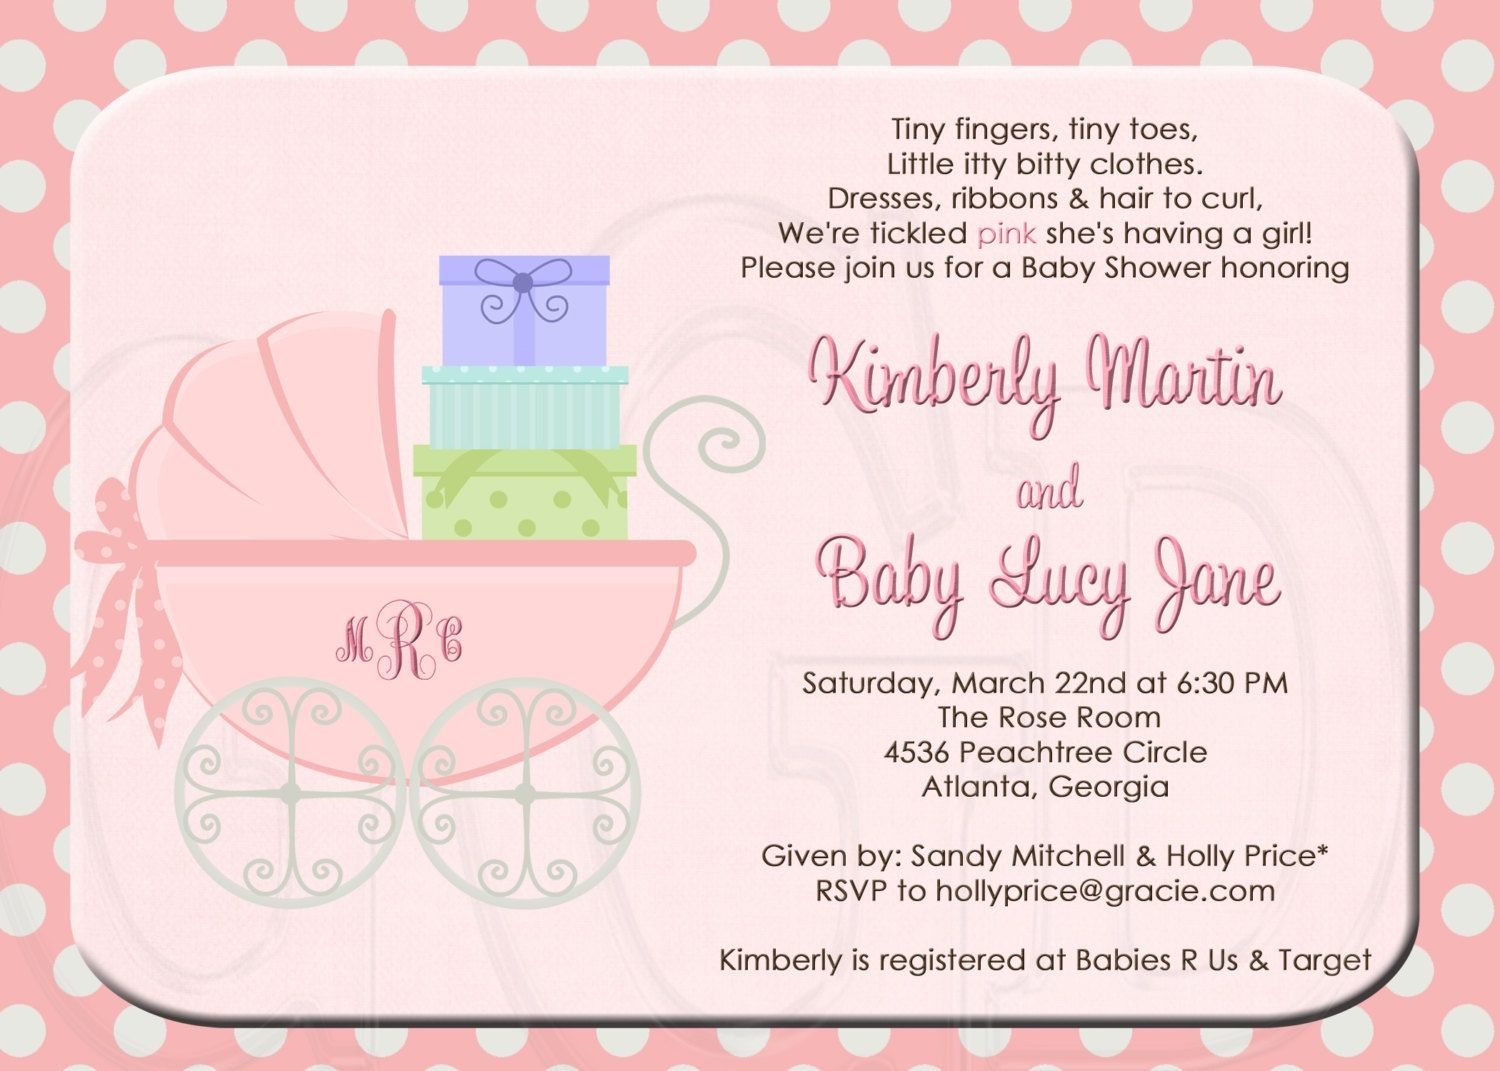 Baby Shower Email Invitations Wording httpatwebryinfo